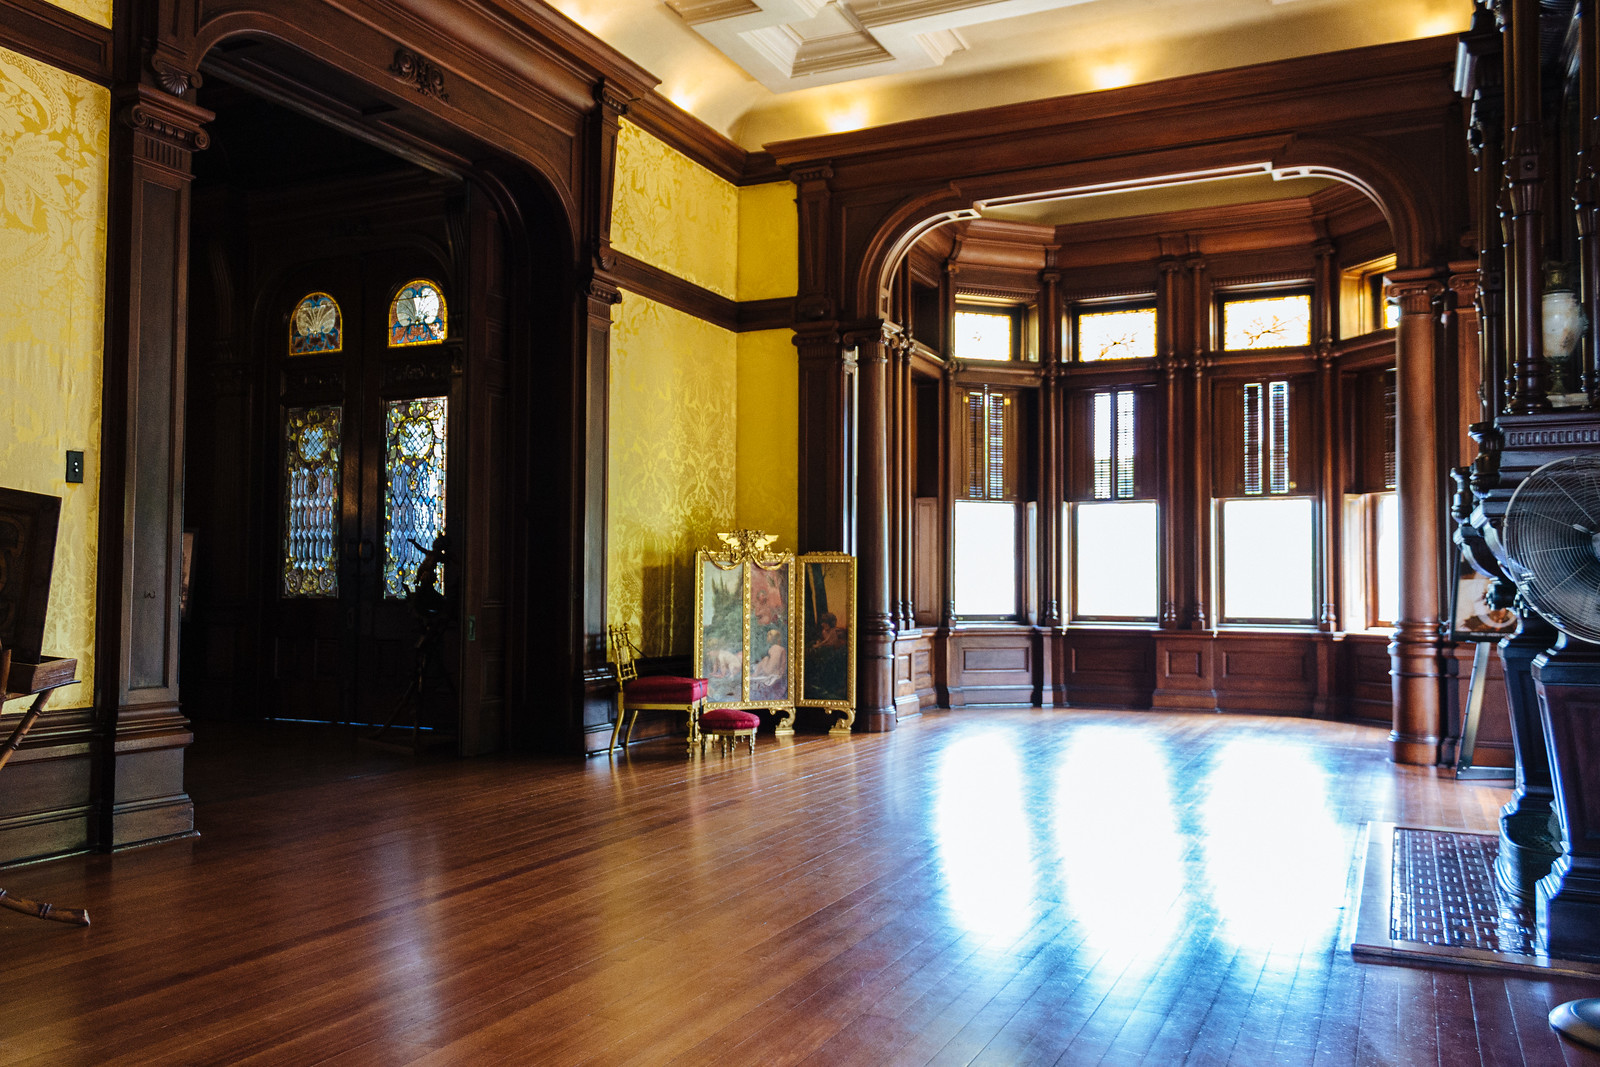 Room inside a mansion with wooden floors, large windows, and golden wallpaper